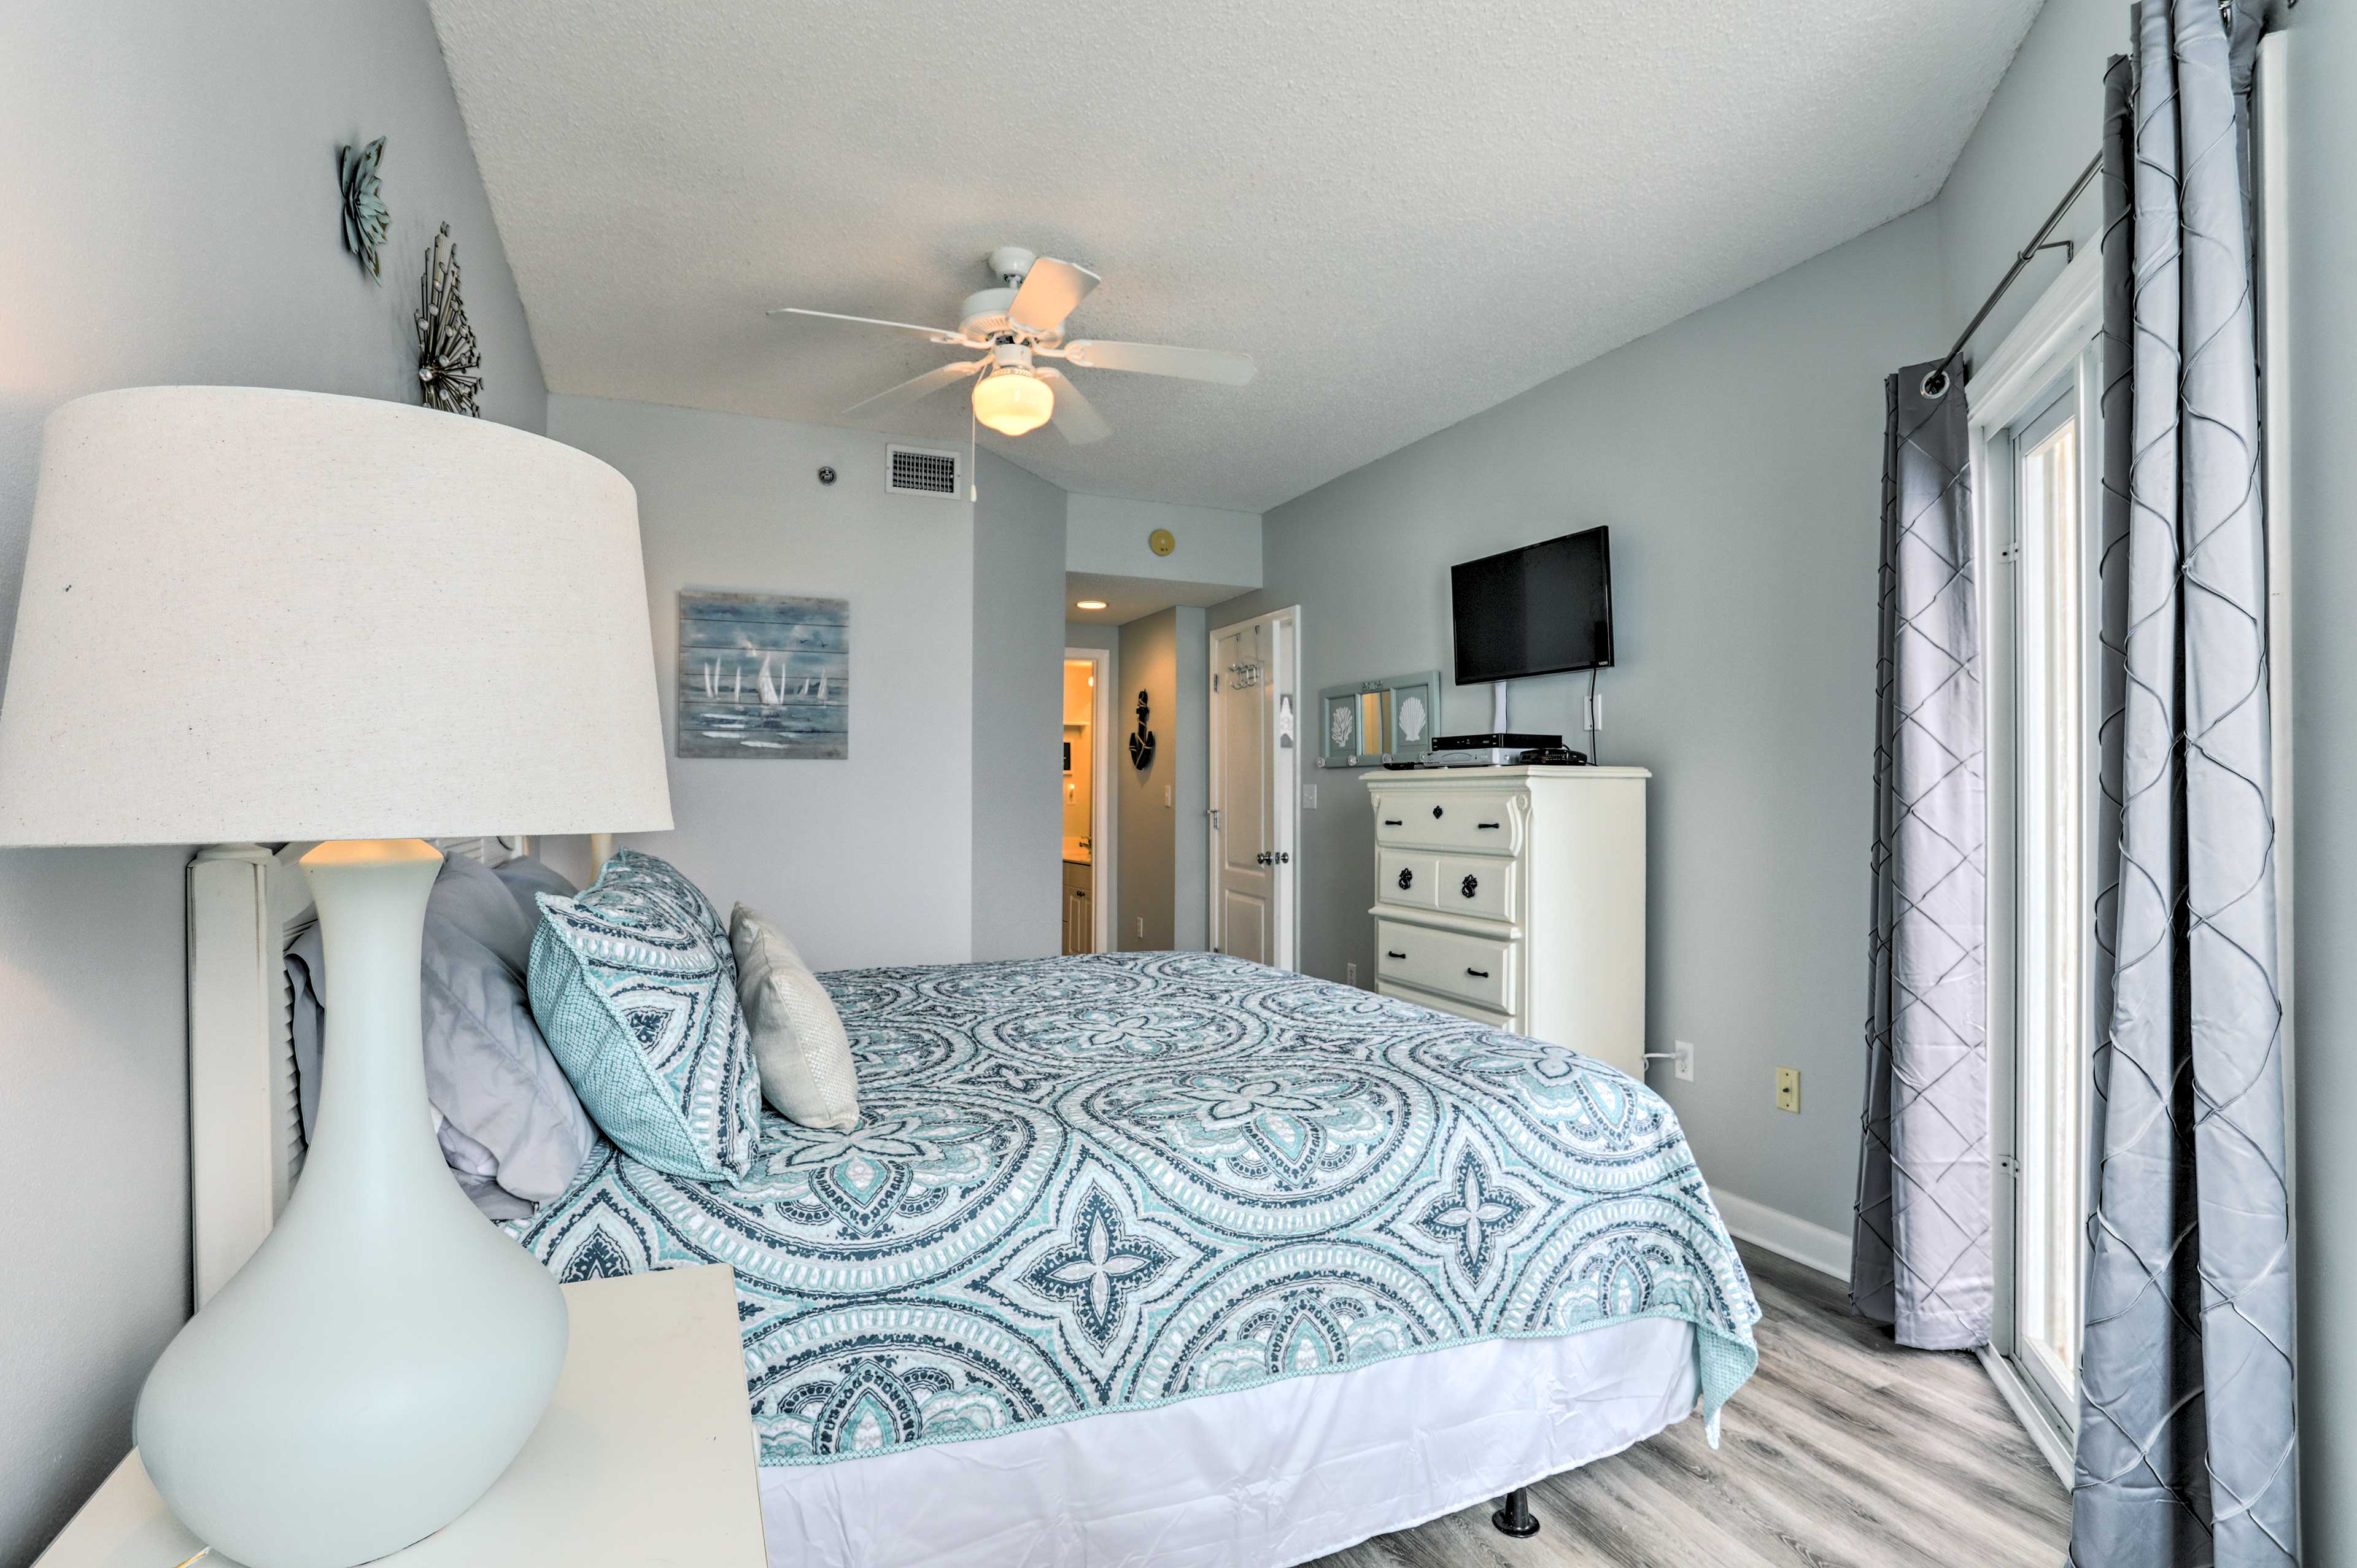 You're ensured a peaceful night in the master bedroom on a plush king bed.